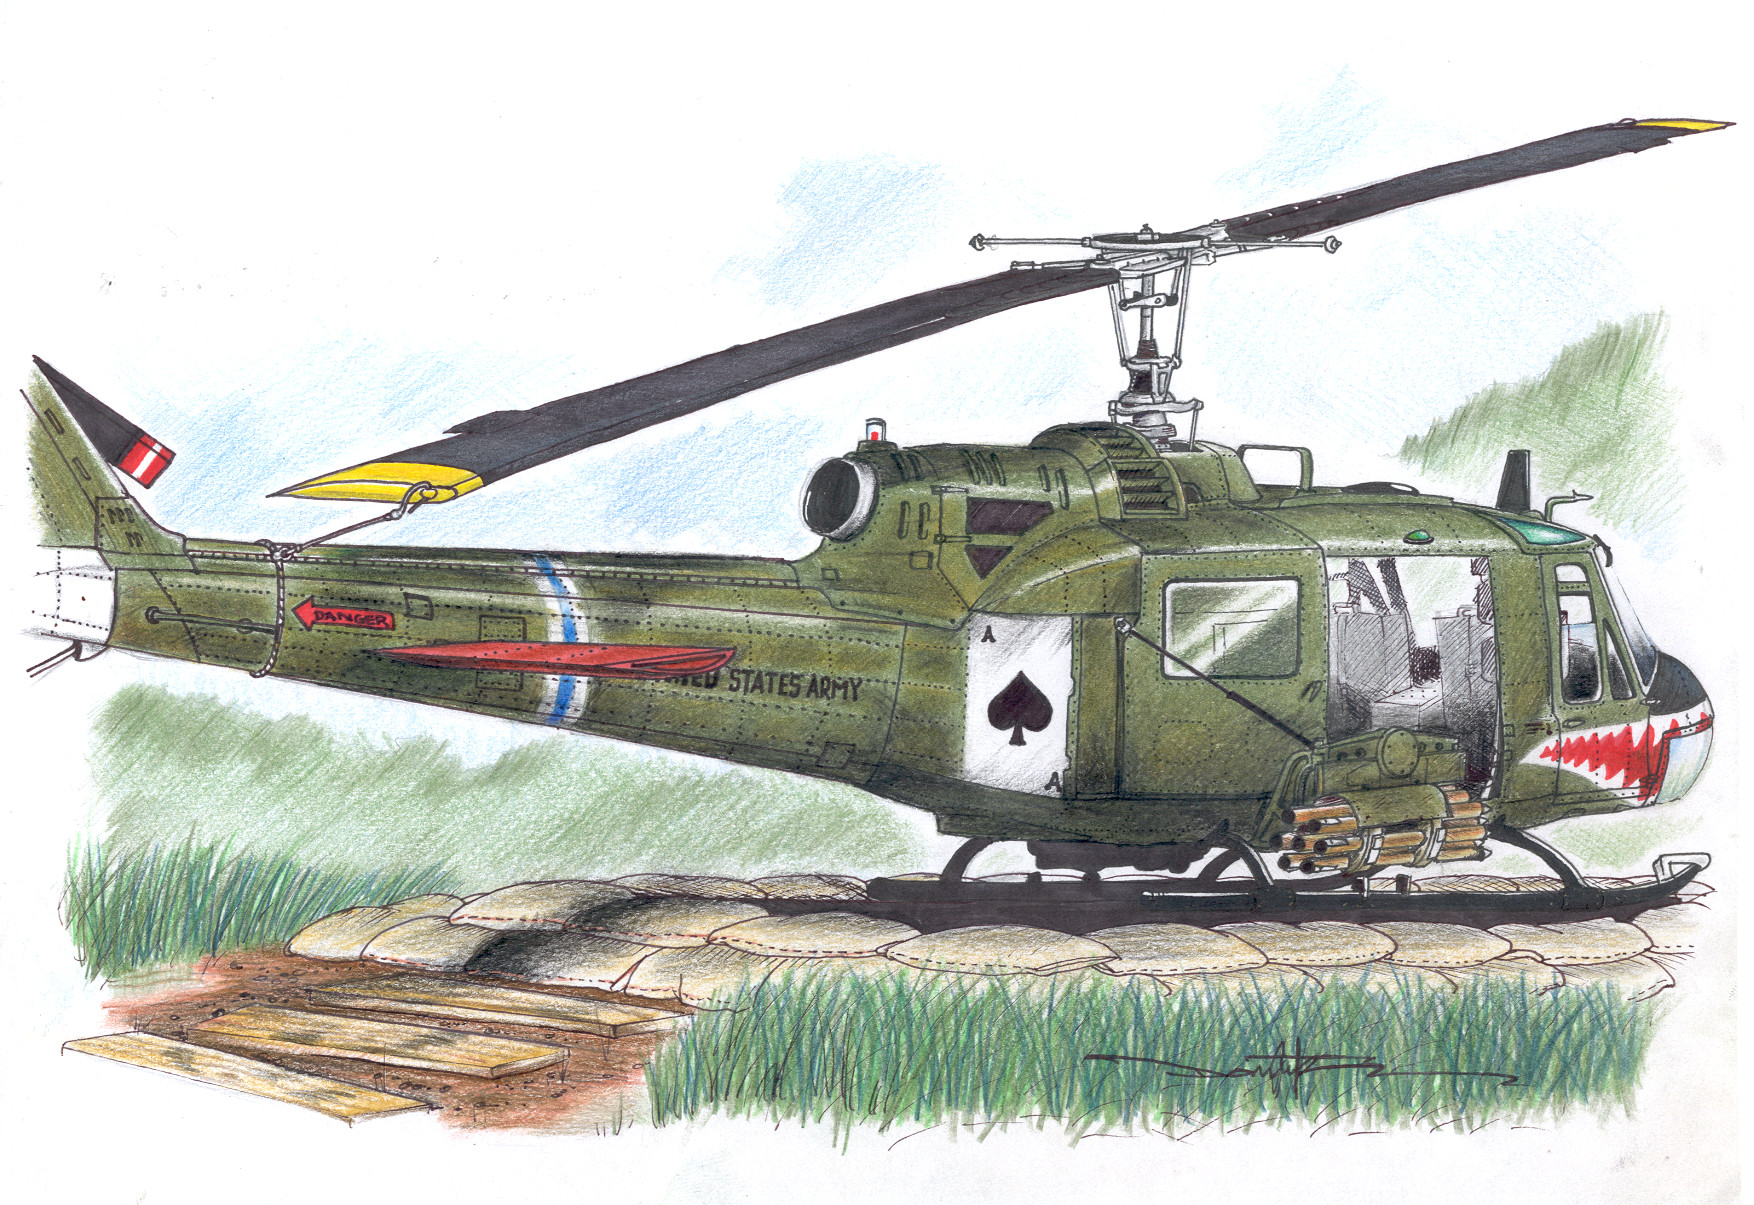 corgi helicopters with Huey Helicopter Drawing on 141558317262 further 151777196096 furthermore 271404801558 also Ambulanceusa furthermore 271475885183.